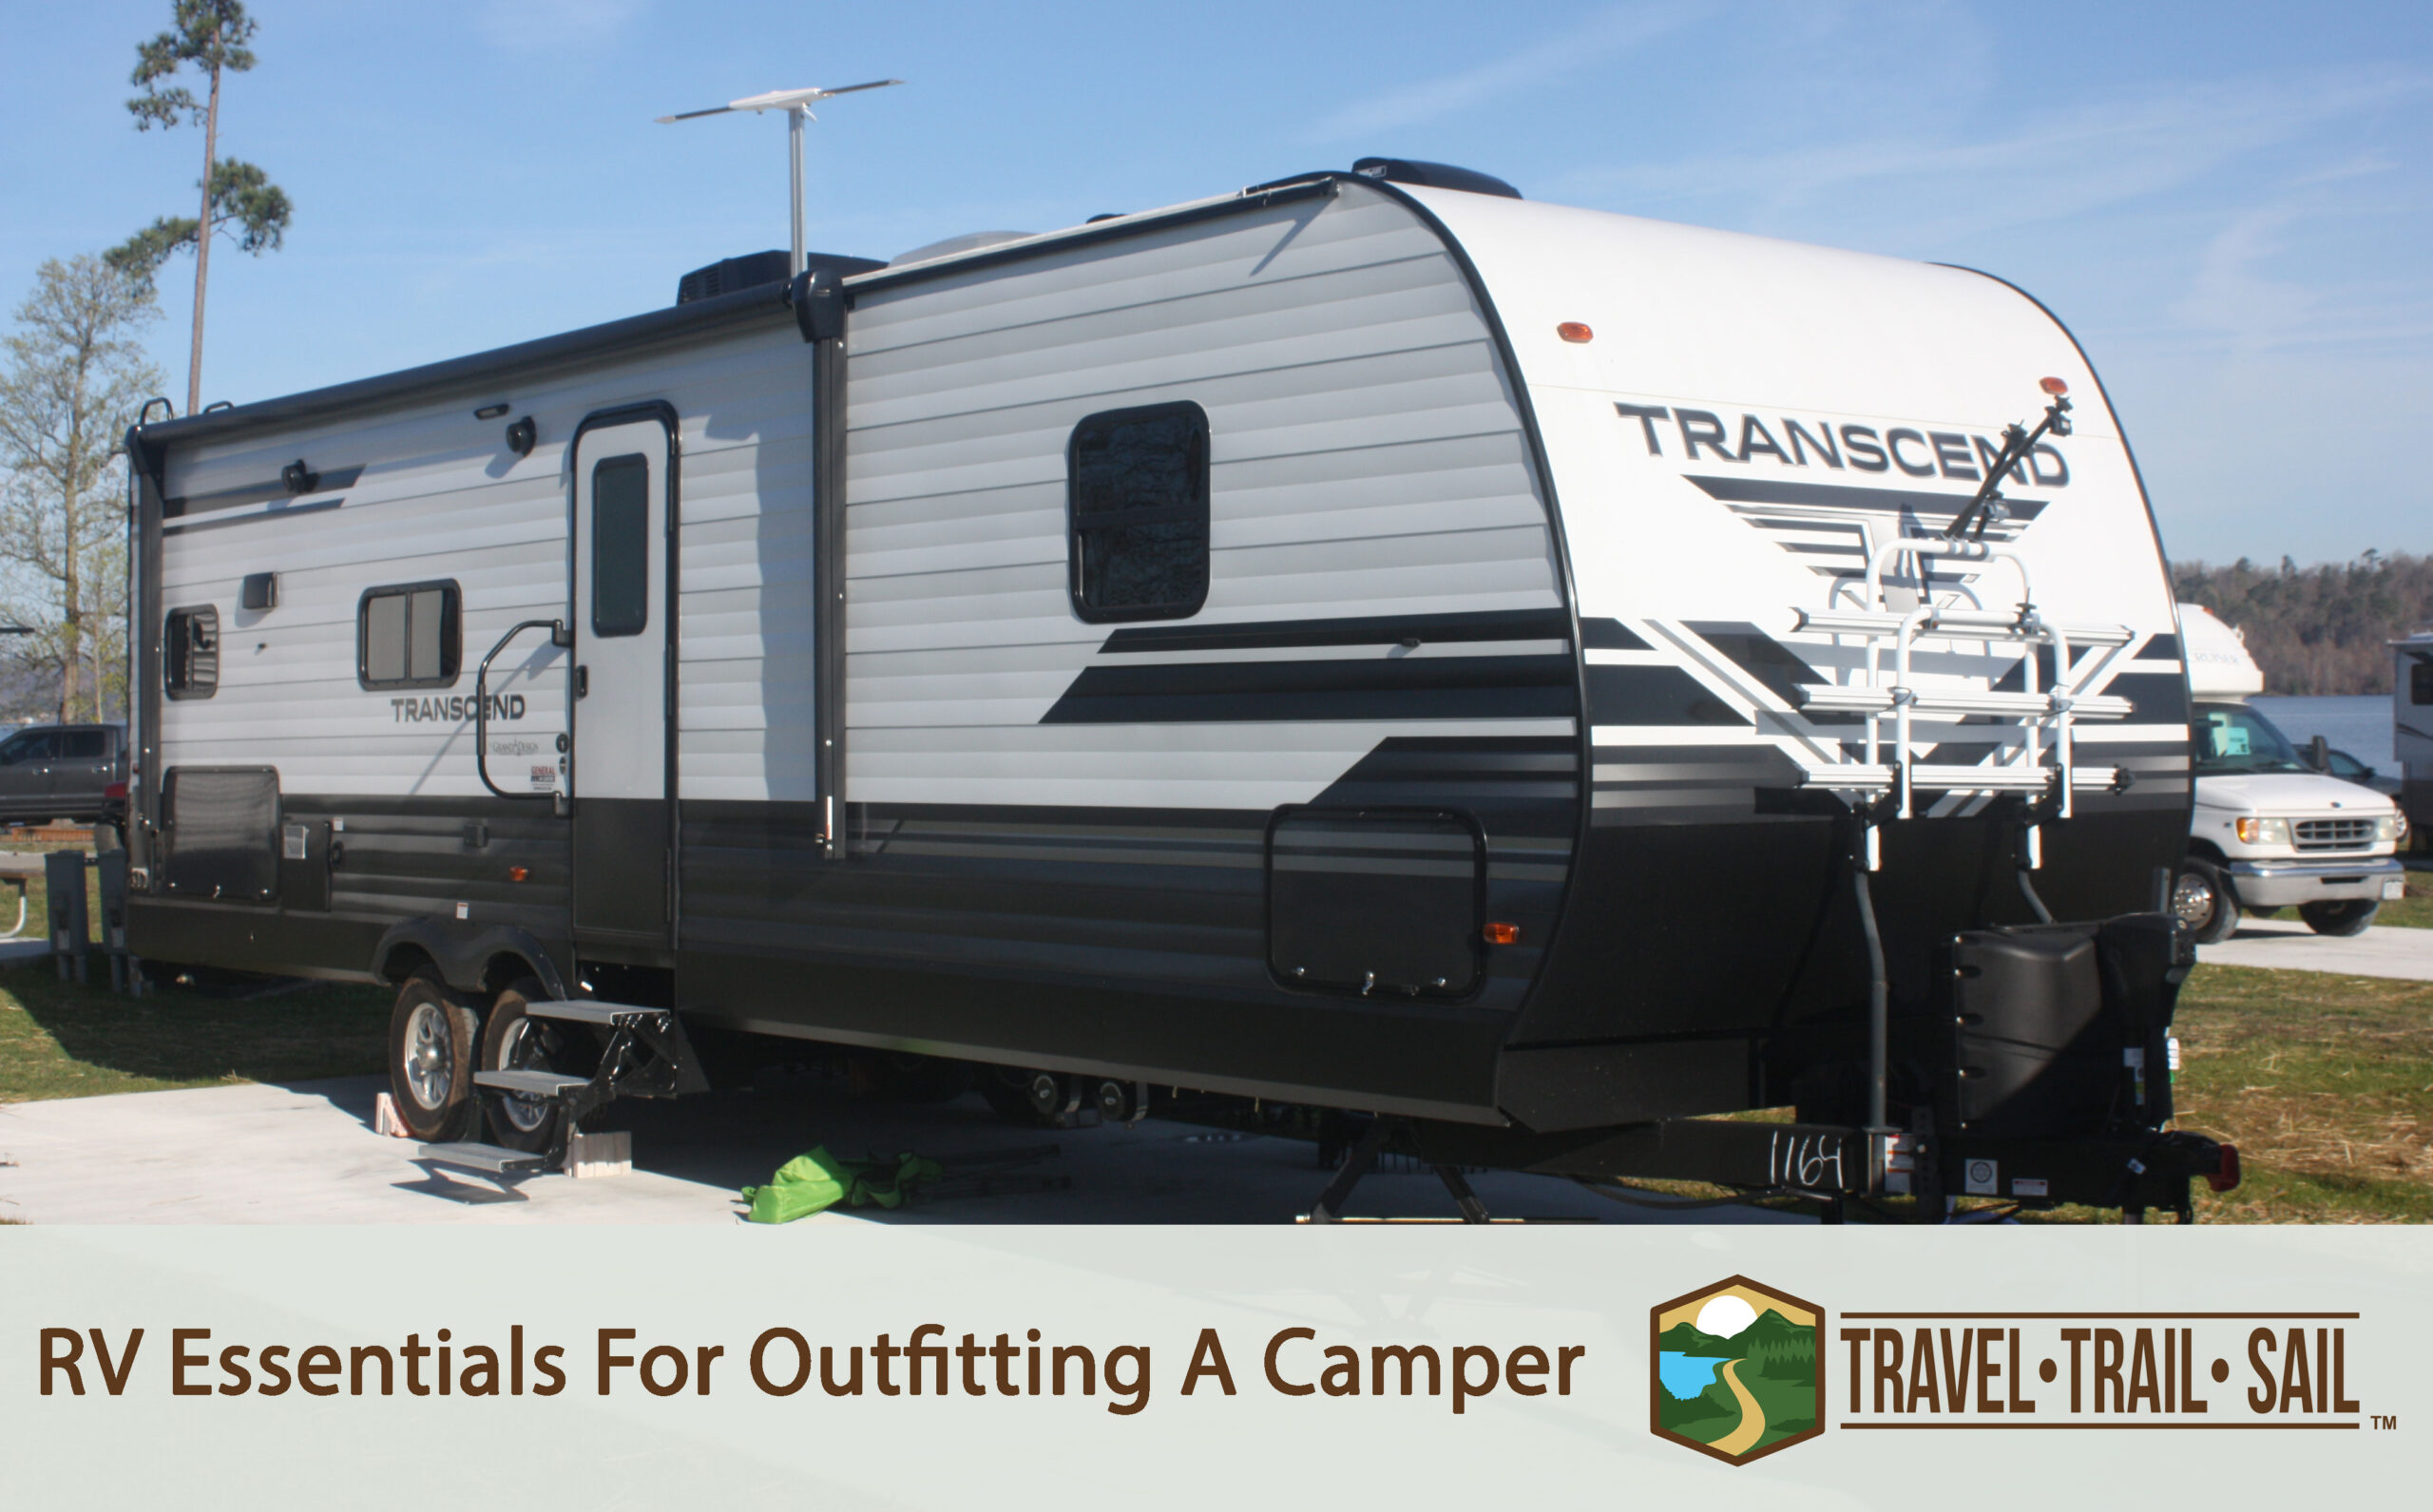 RV Essentials For Outfitting A Camper